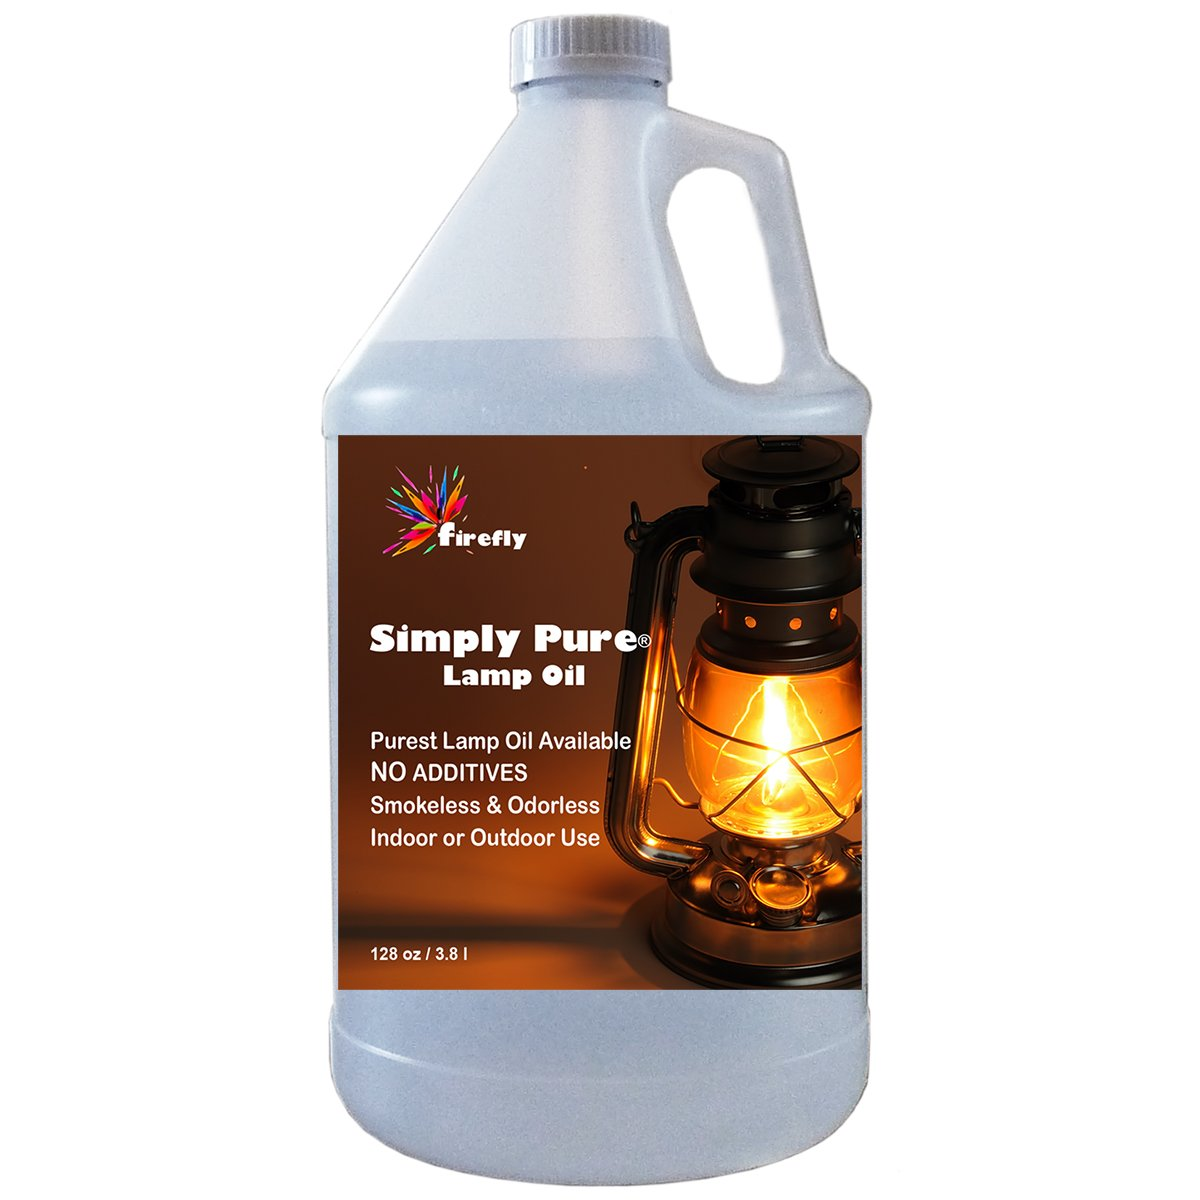 Firefly Paraffin Lamp Oil - 1 Gallon - Odorless & Smokeless - Simply Pure - Ultra Clean Burning Liquid Paraffin Fuel by Firefly